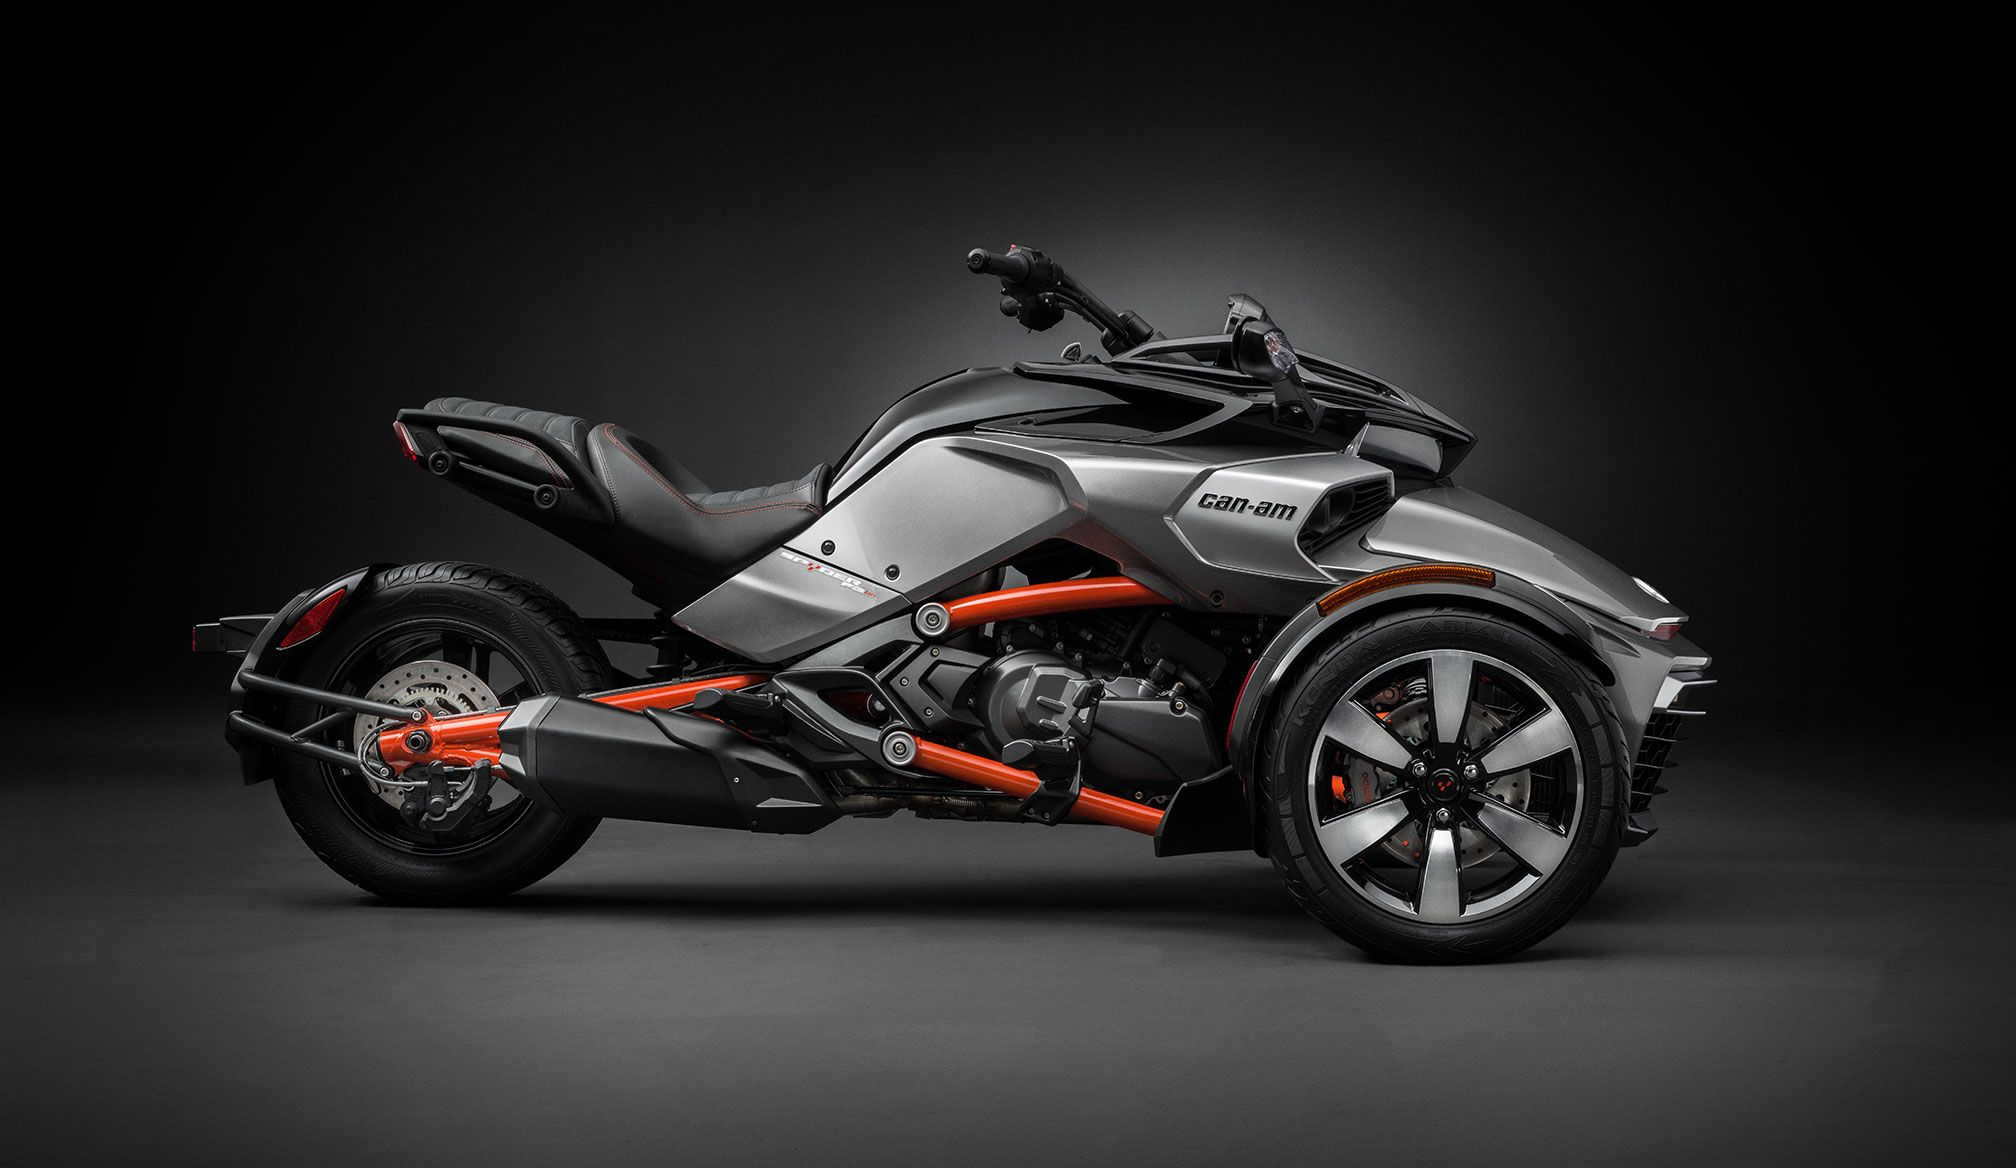 2016 can am spyder f3s